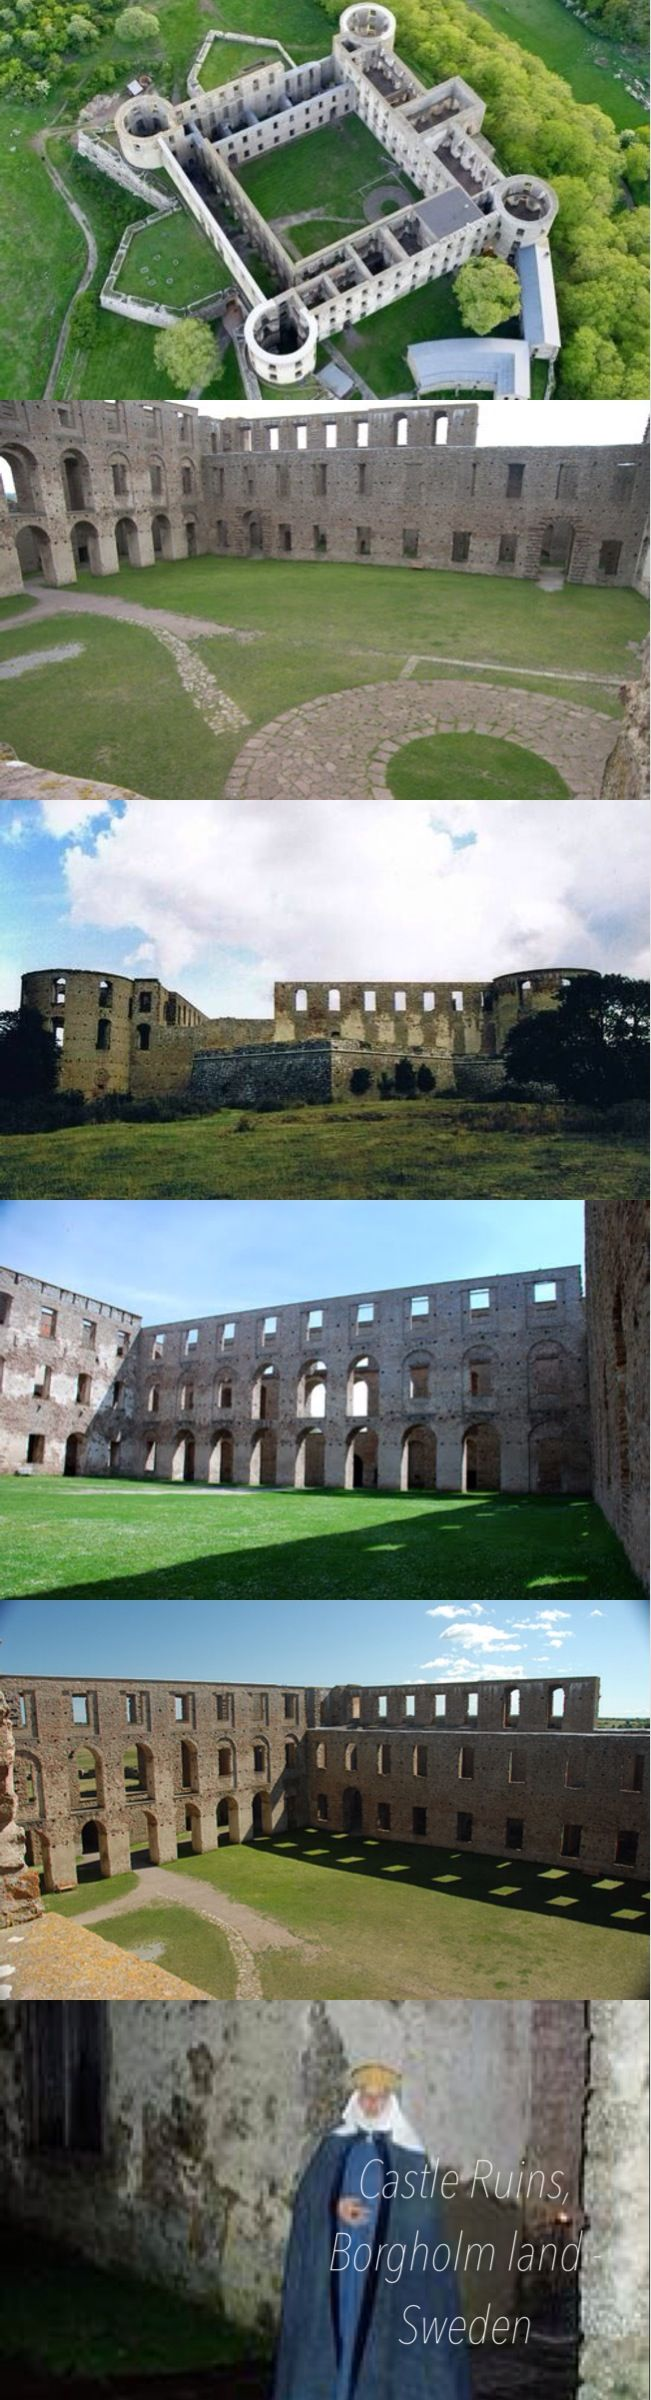 "Borgholm Castle - 800 Years of Swedish History  Borgholm Castle, ""the most beautiful ruin in Scandinavia"", is one of those examples of architecture, that leaves hardly any visitor unaffected."